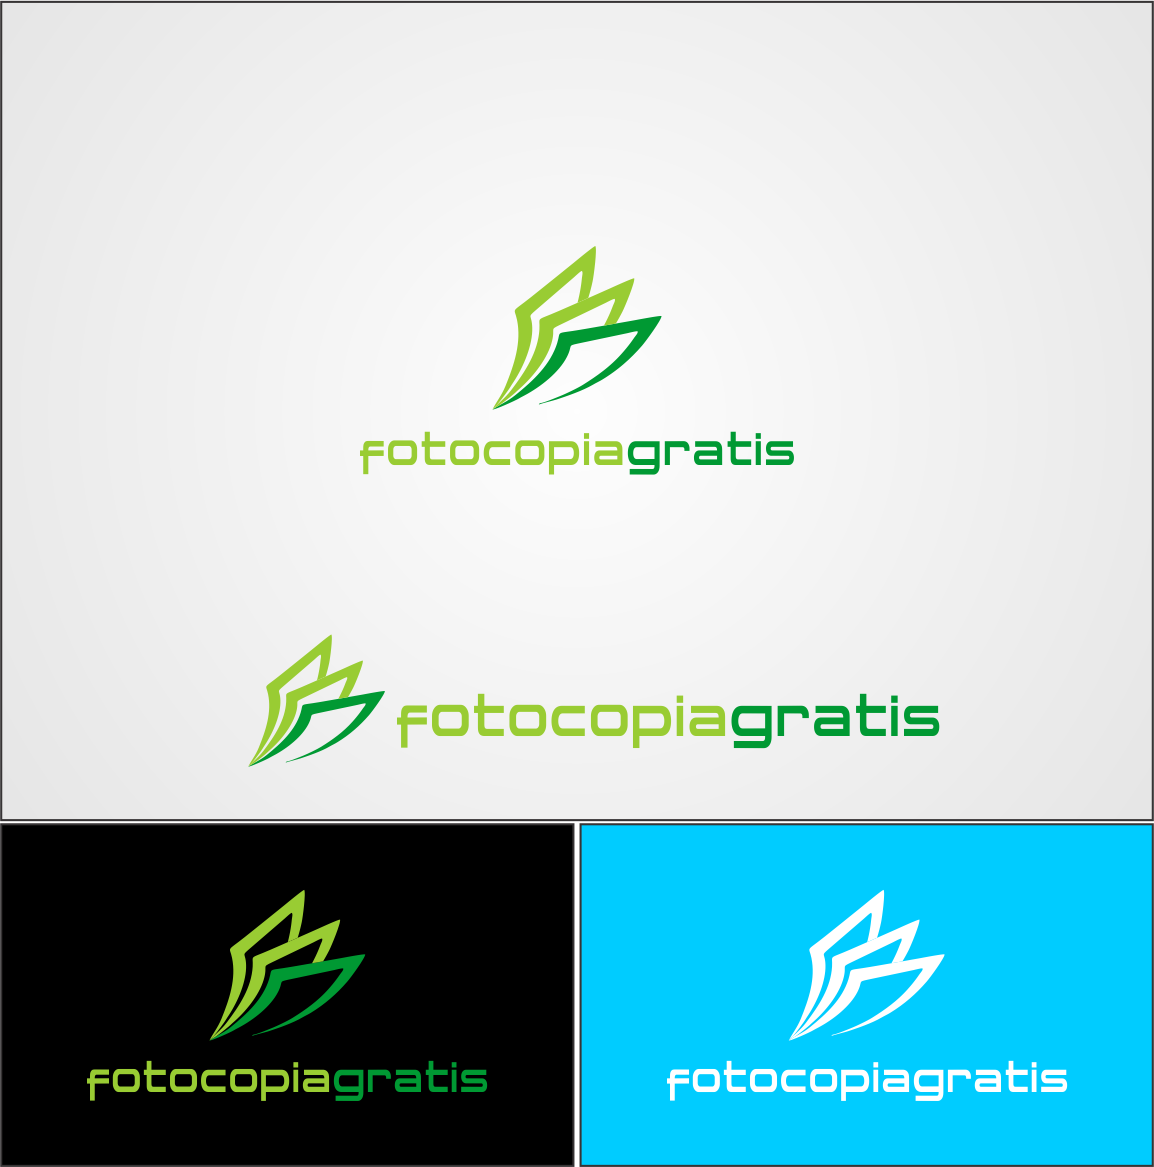 Logo Design by Agus Martoyo - Entry No. 137 in the Logo Design Contest Inspiring Logo Design for Fotocopiagratis.